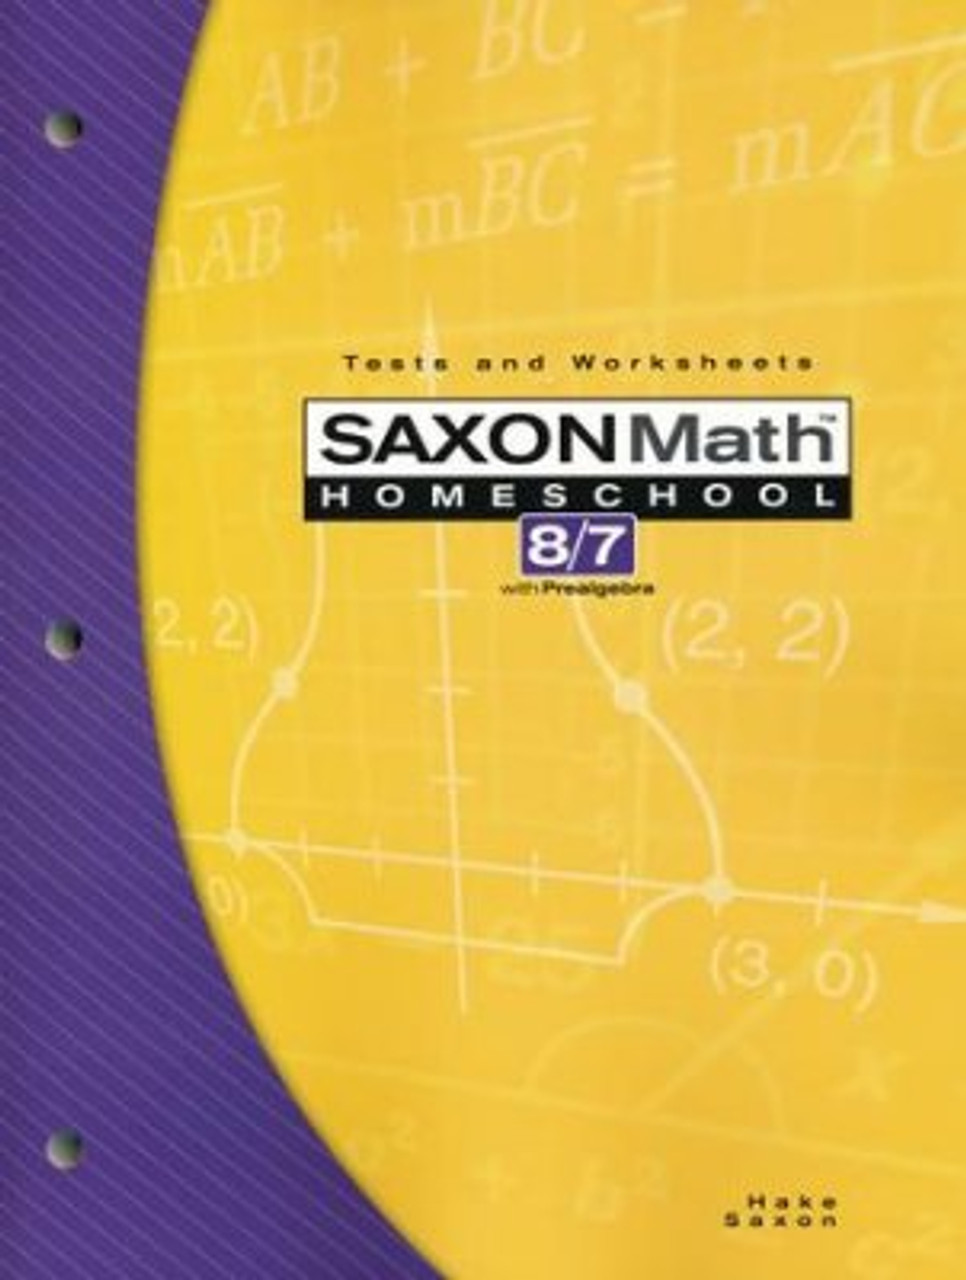 medium resolution of Saxon Math 8/7 3rd Edition Tests and Worksheets - Classroom Resource Center